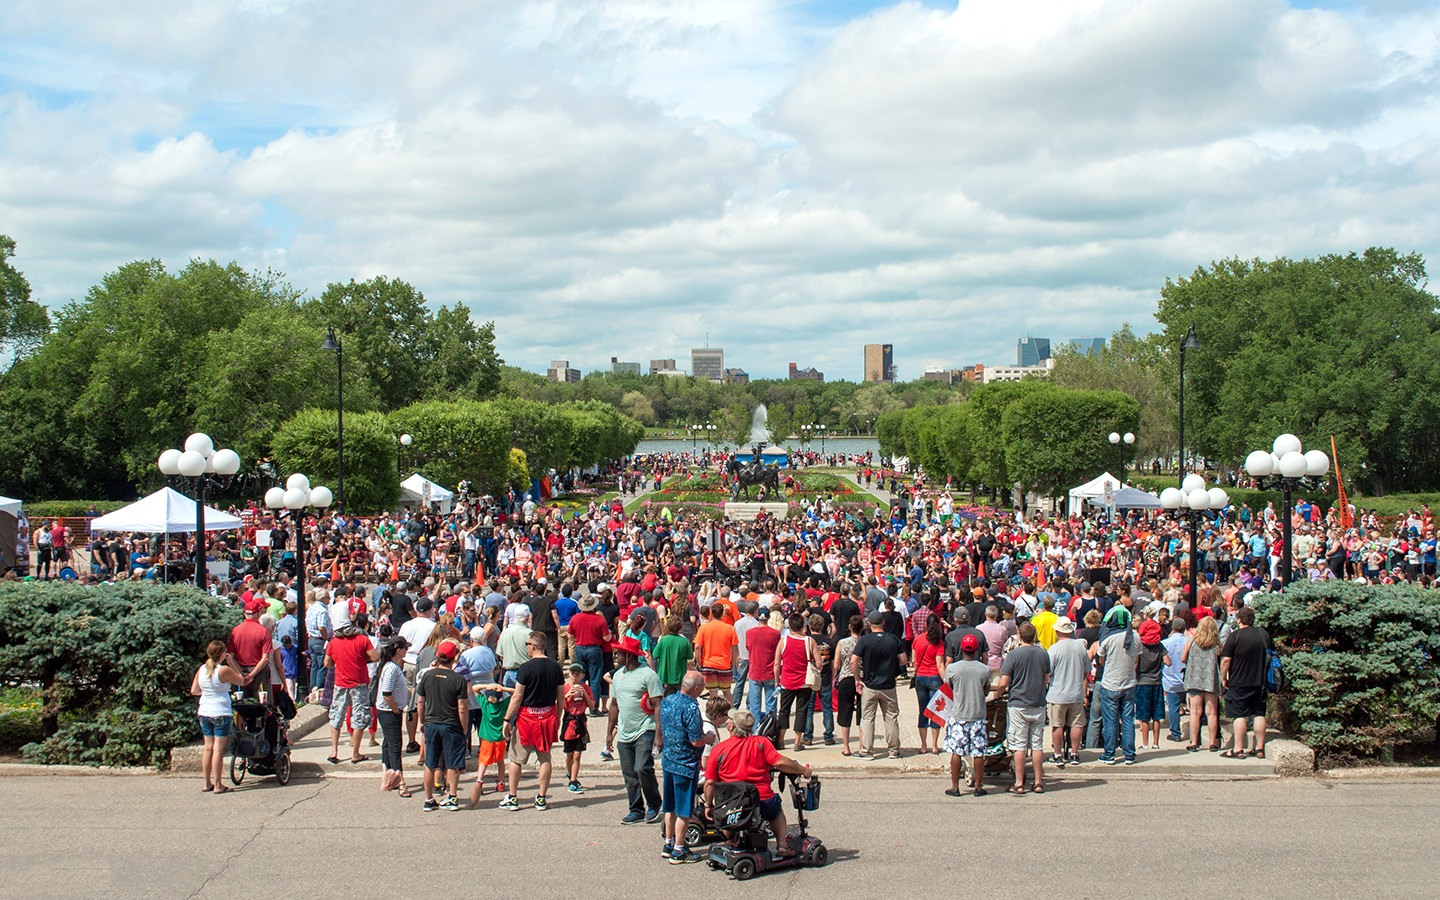 Canada Day celebrations in Regina, Saskatchewan